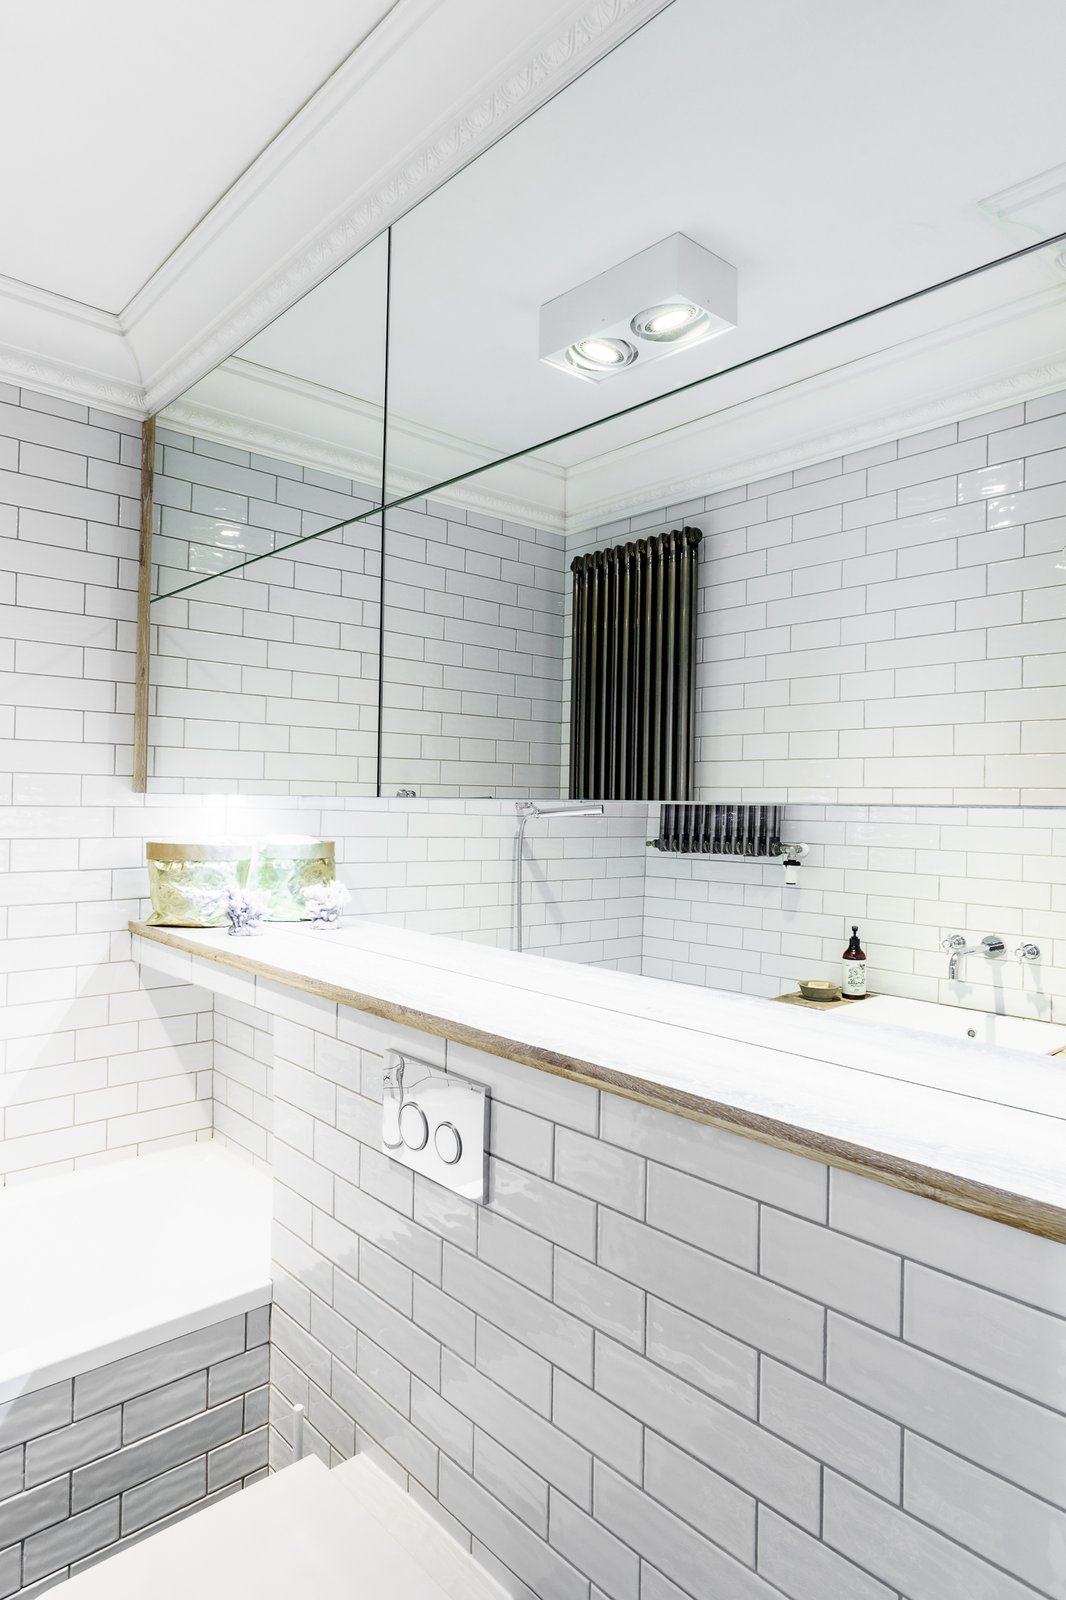 Tagged: Bath Room, Engineered Quartz Counter, Ceiling Lighting, and Ceramic Tile Wall.  Loft in Poland by Lucyna Kołodziejska | INTERIORS FACTORY